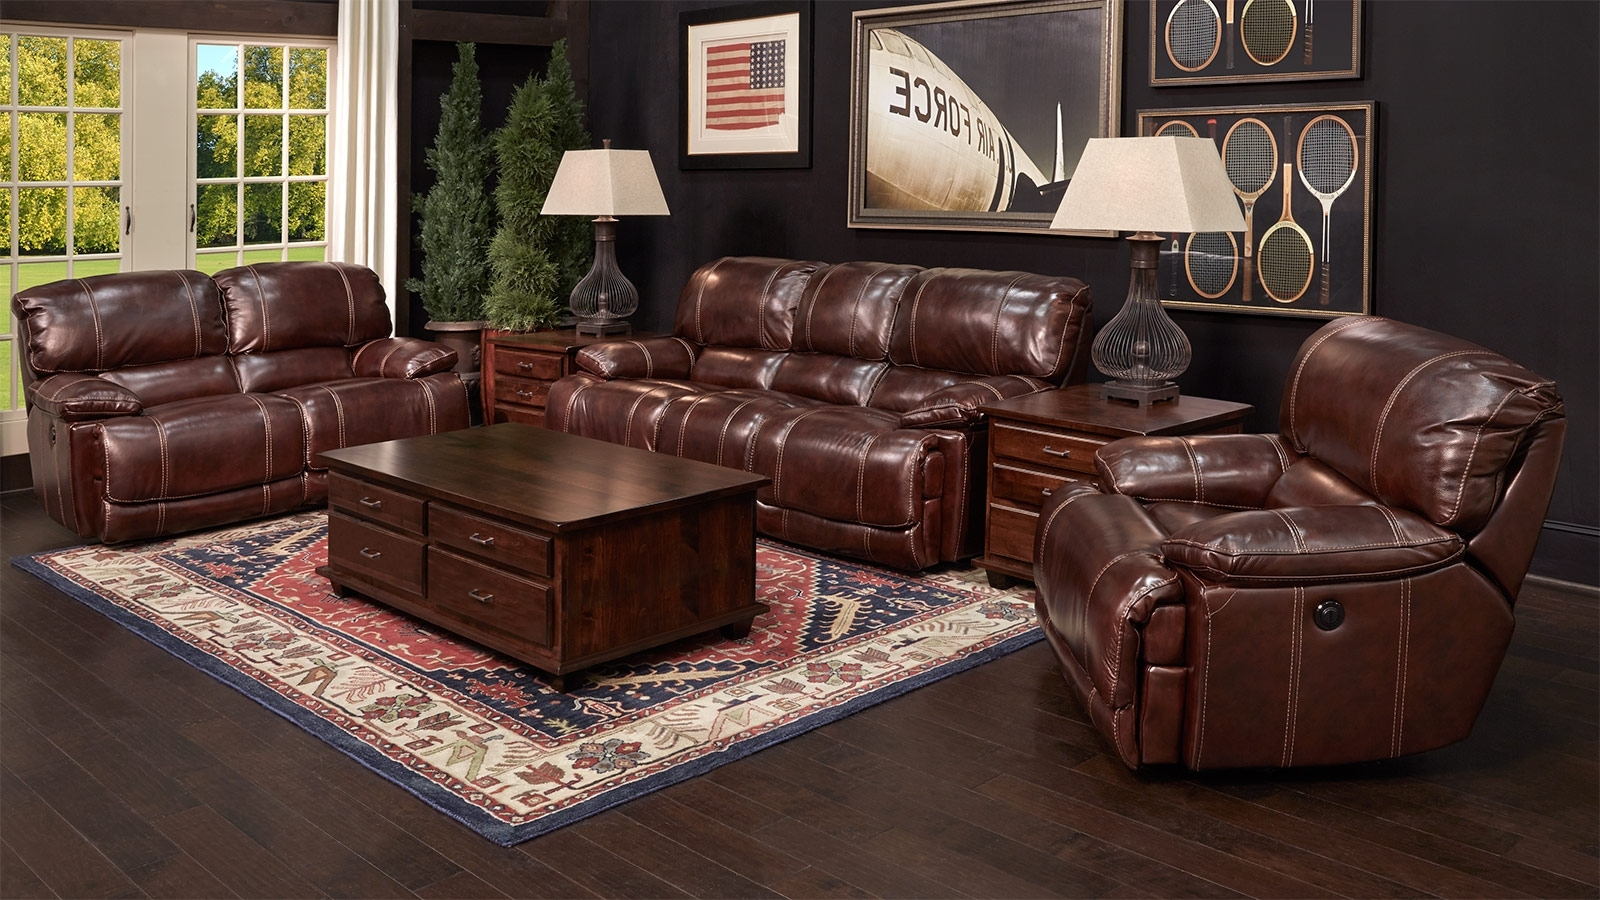 Newest Gallery Furniture Sectional Sofas Intended For Flexsteel Furniture / Gallery Furniture Store, (View 17 of 20)